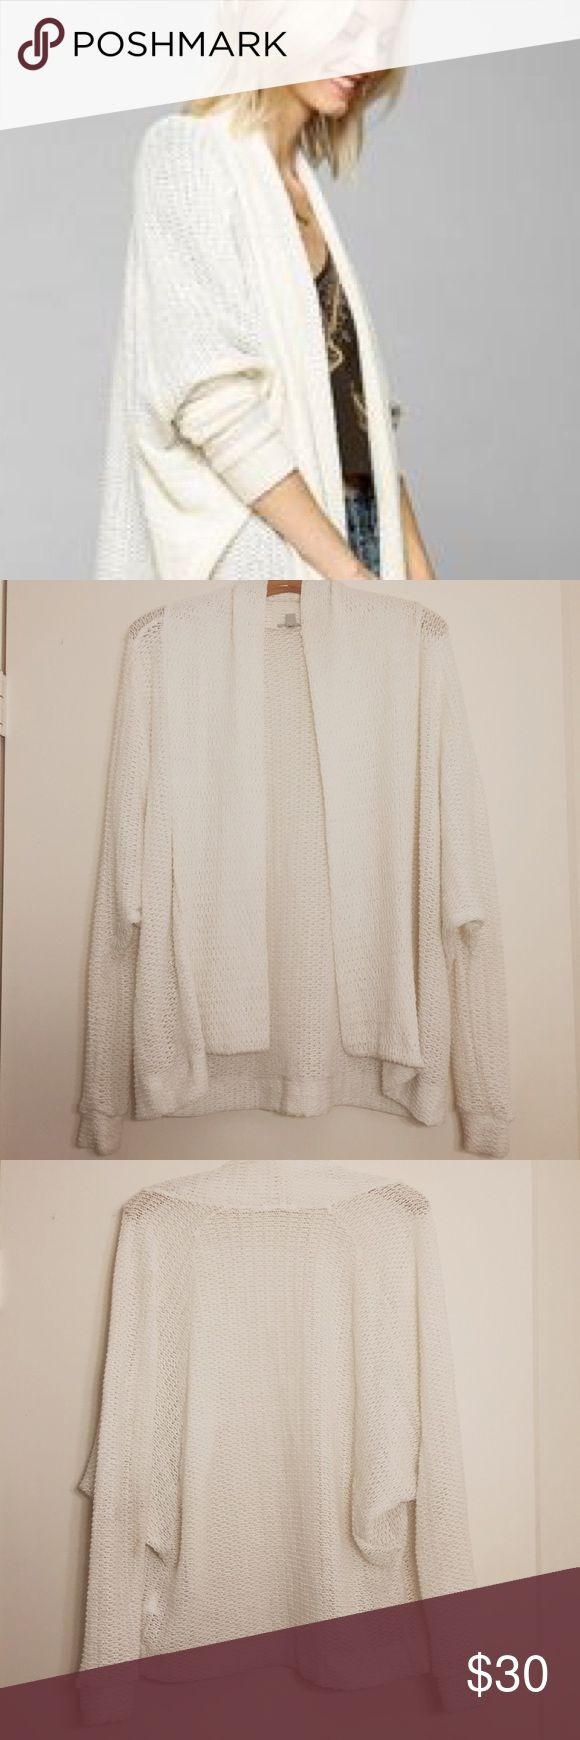 "Urban Outfitters Ecote ""batwing"" sweater size xs Urban Outfitters Ecote ""bat wing"" sweater size xs light sweater great to layer over a plaid shirt in the winter and to wear with a tank or tee in the fall or spring! Barely warn, in great condition Urban Outfitters Sweaters Cardigans"